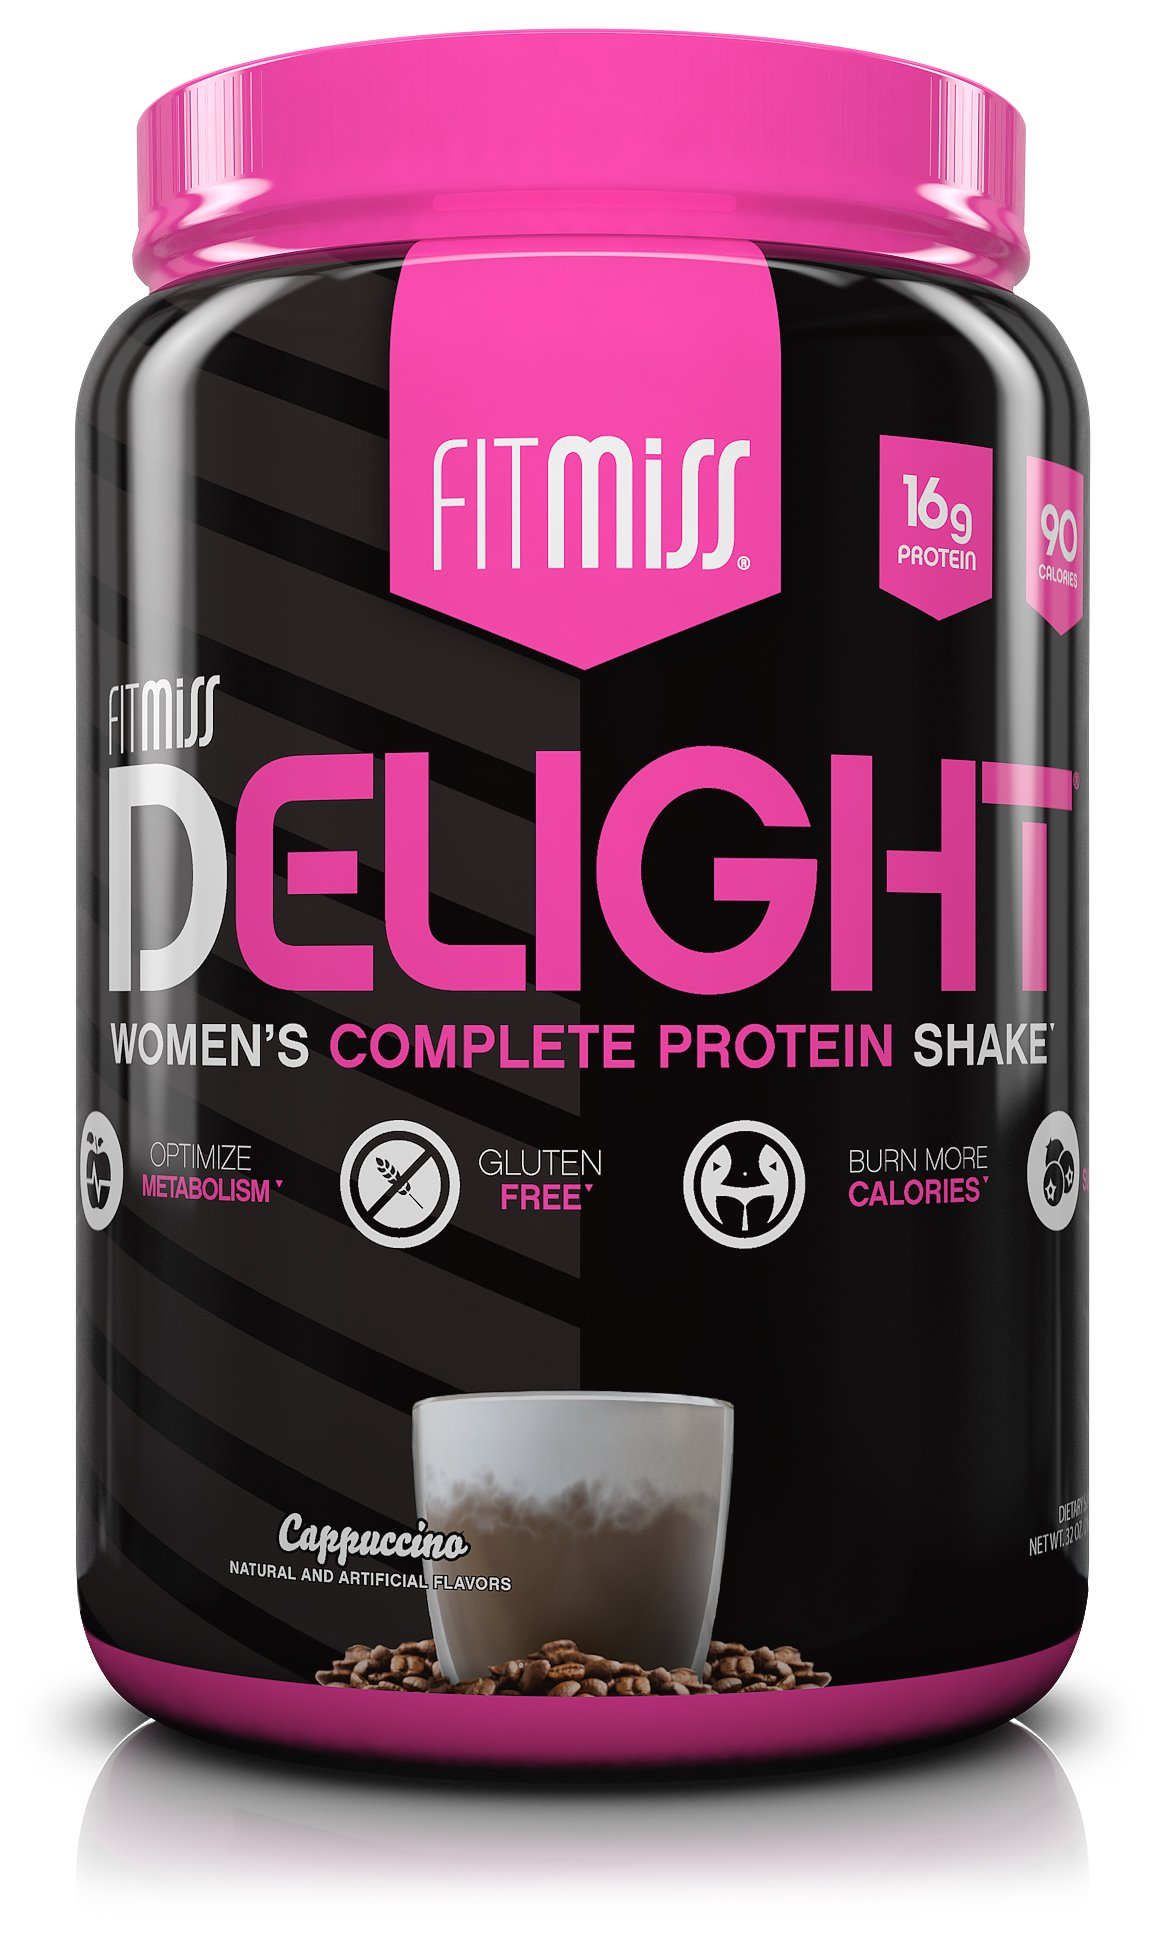 FitMiss Delight Protein Powder, Healthy Nutritional Shake for Women, Whey Protein, Fruits, Vegetables and Digestive Enzymes, Support Weight Loss and Lean Muscle Mass, Cappuccino, 2-Pound